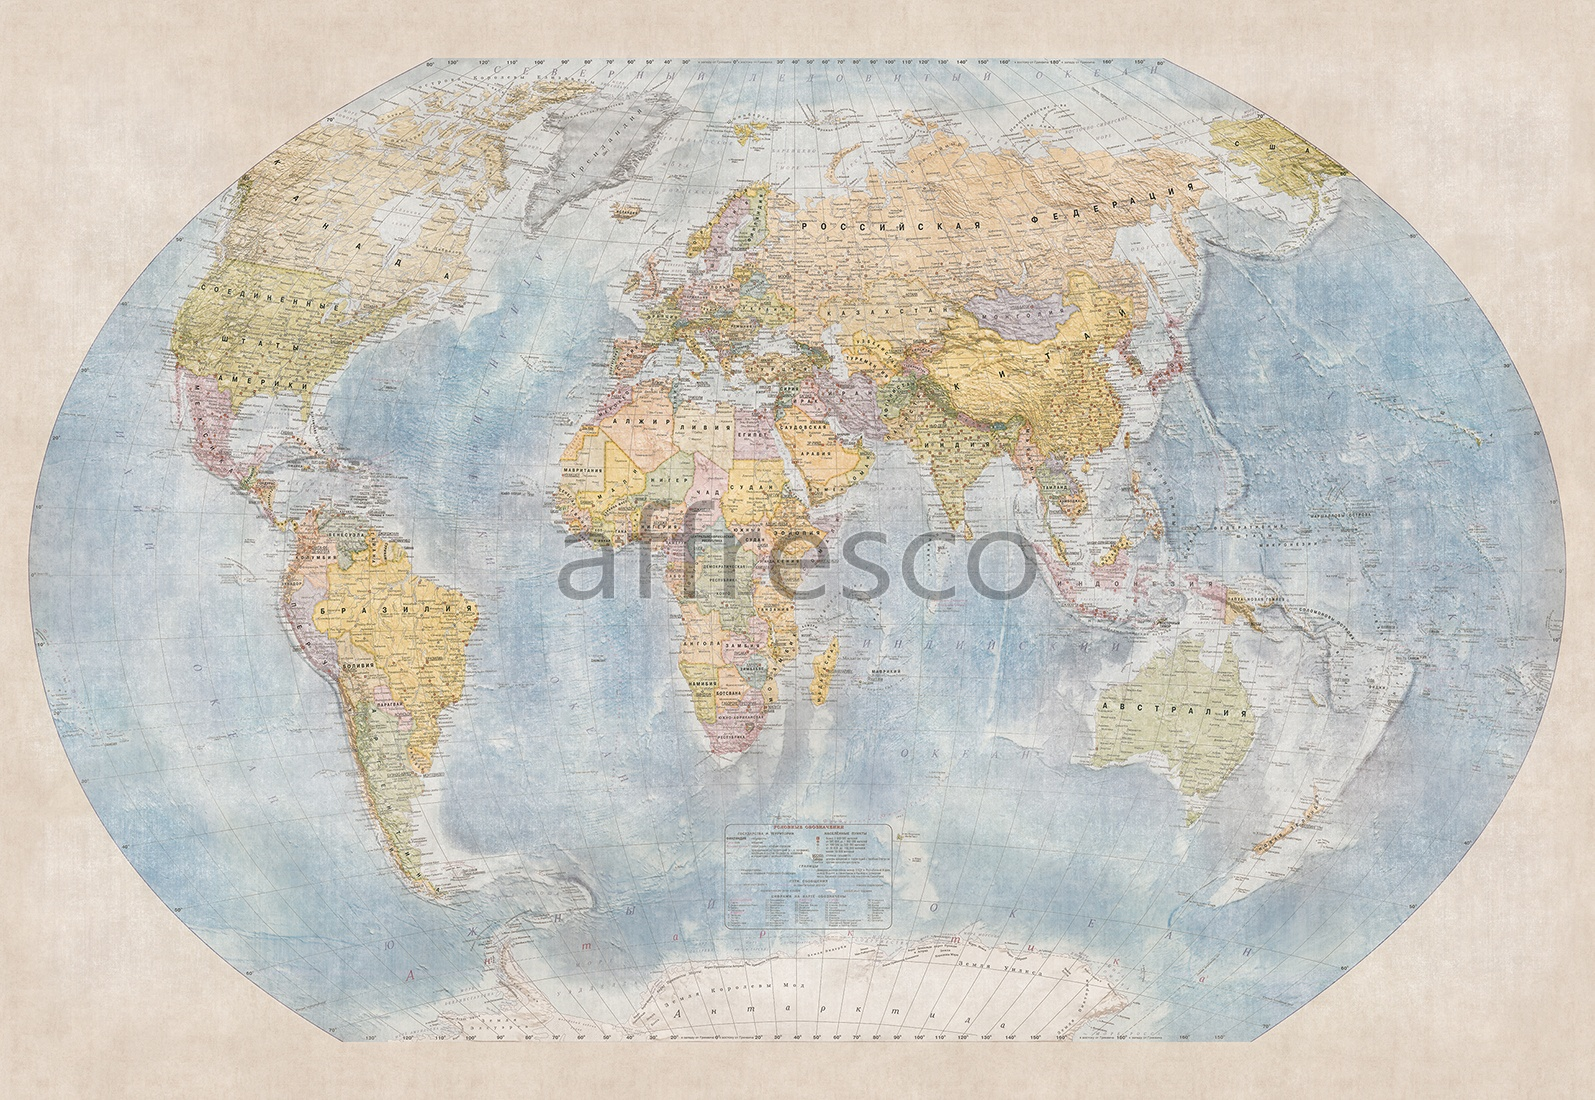 ID136477 | Maps |  | Affresco Factory